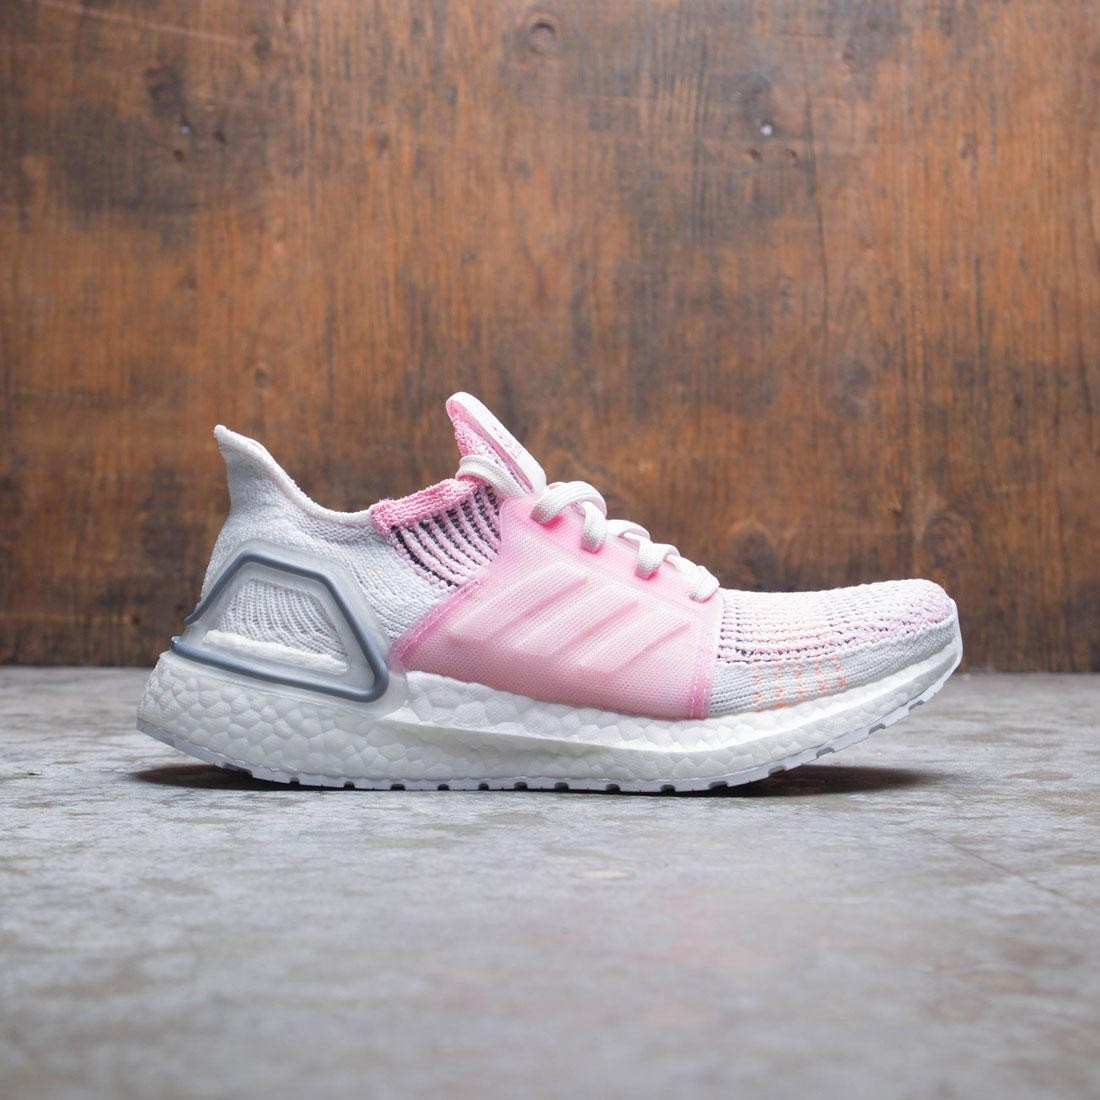 adidas ultra boost women's shoes pink